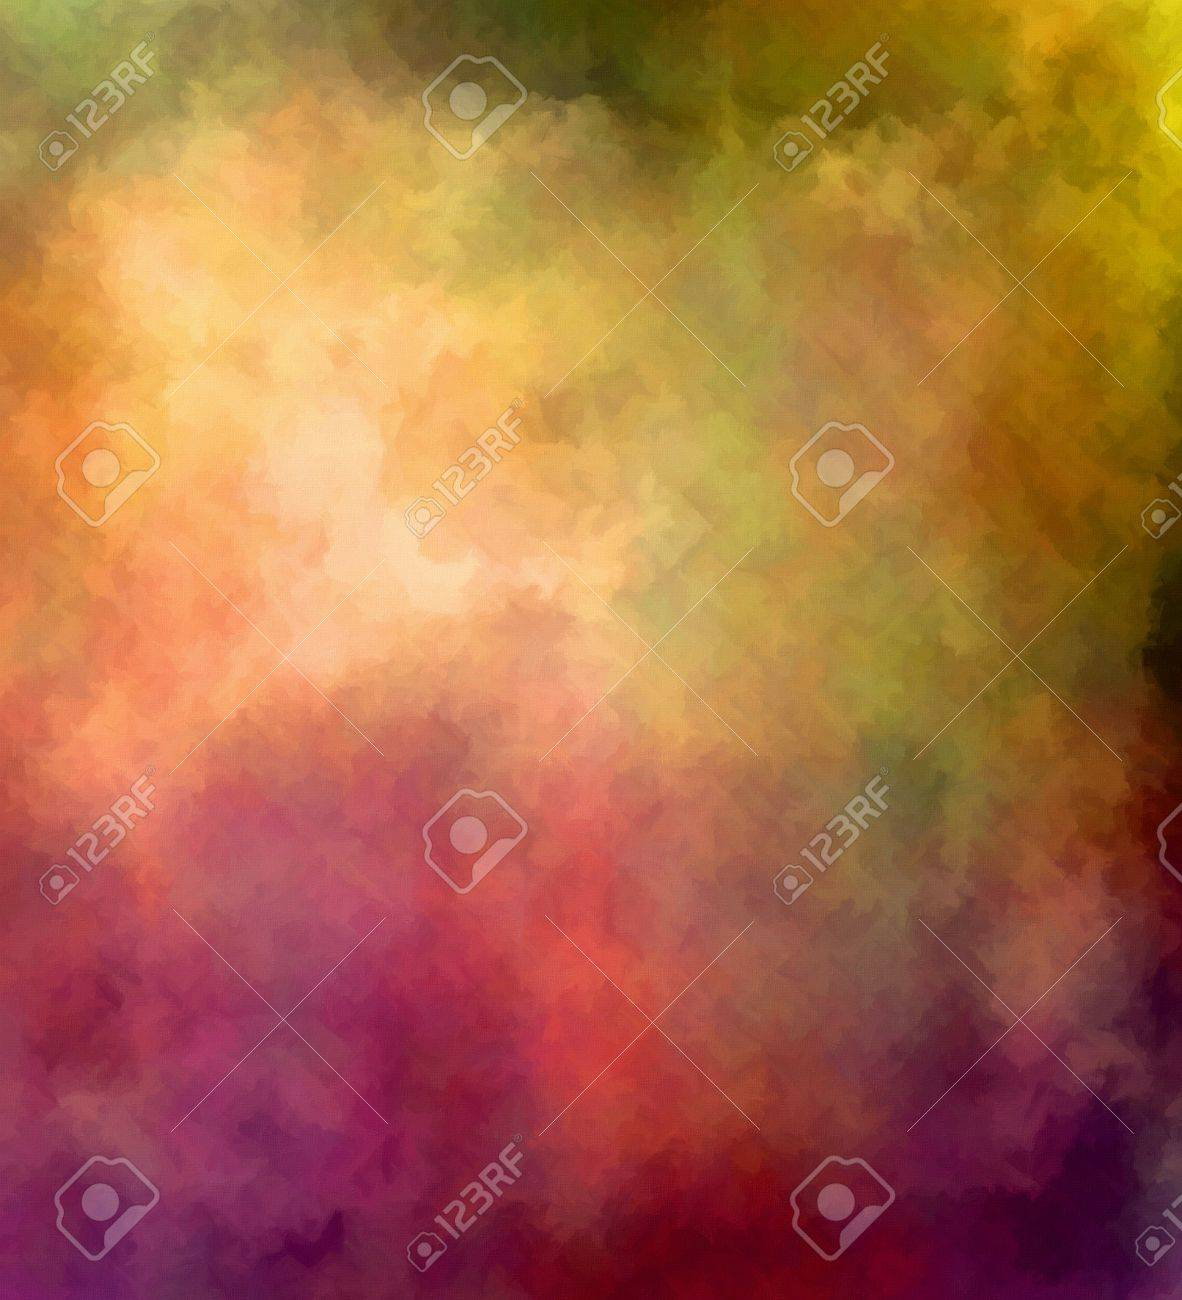 colorful textured background digital painting in scarlet green